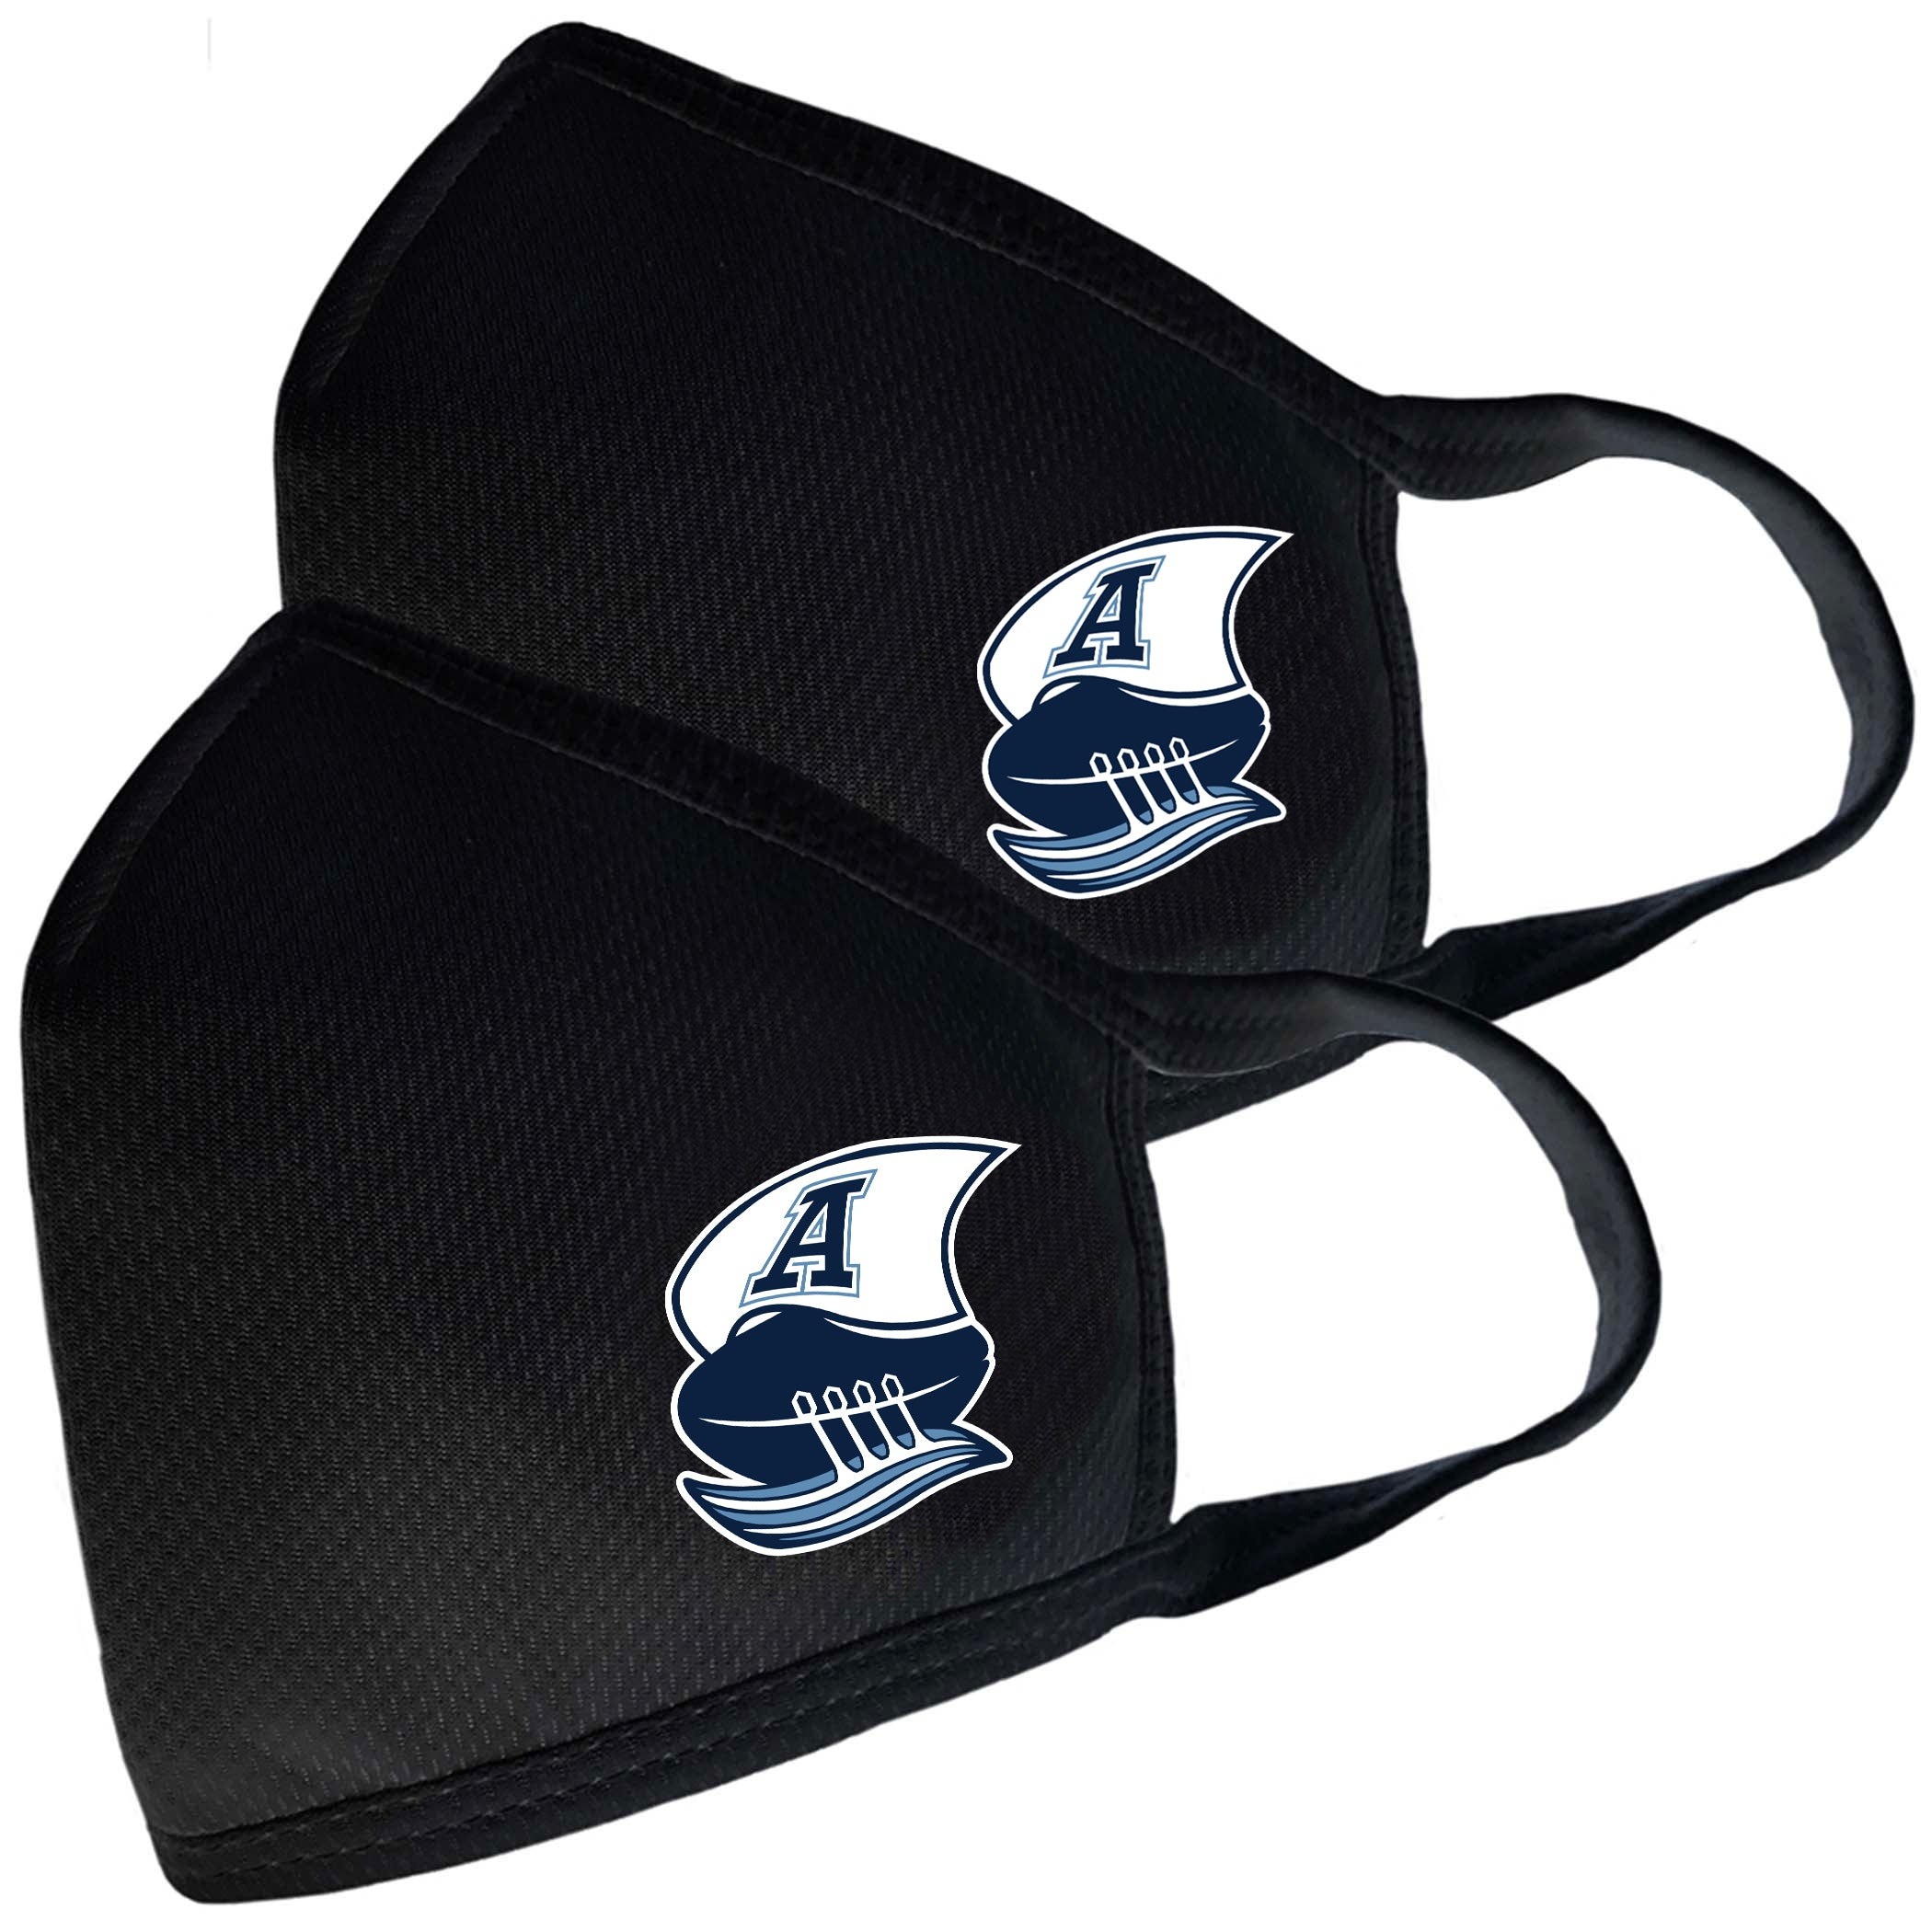 Toronto Argos Adult 2 Pack Face Covers